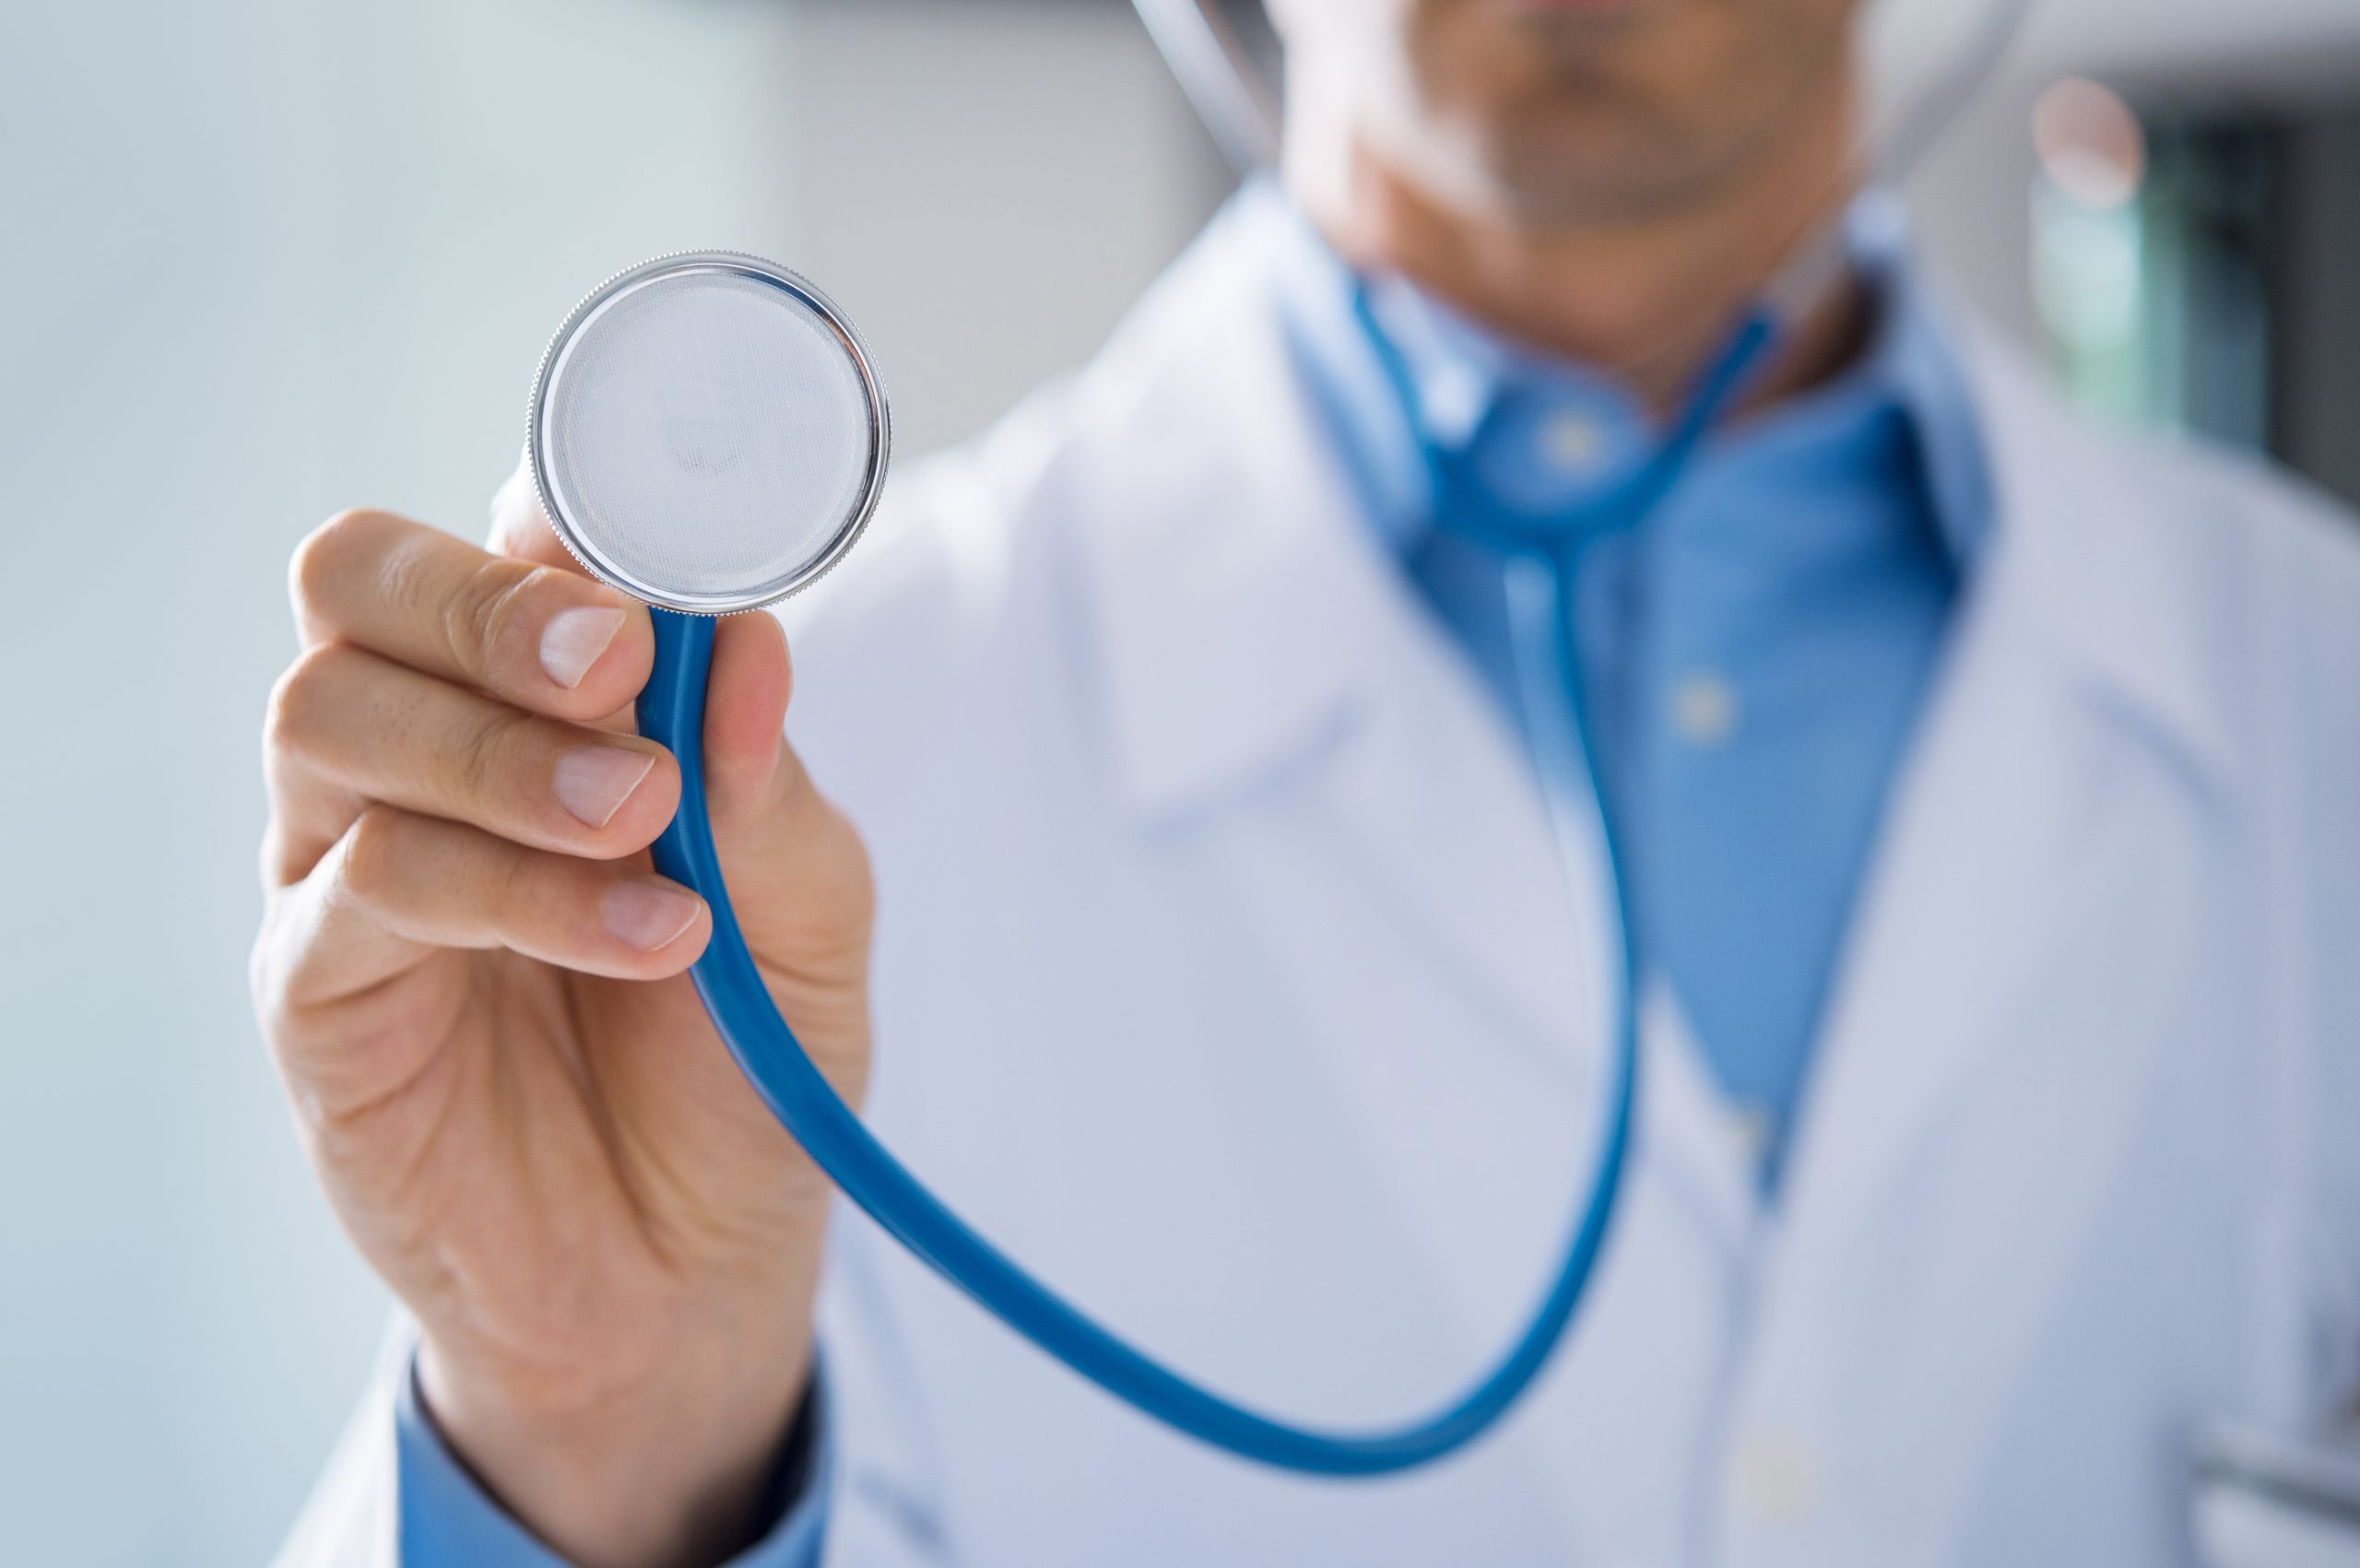 Male doctor showing stethoscope for checkup. Close up of doctor